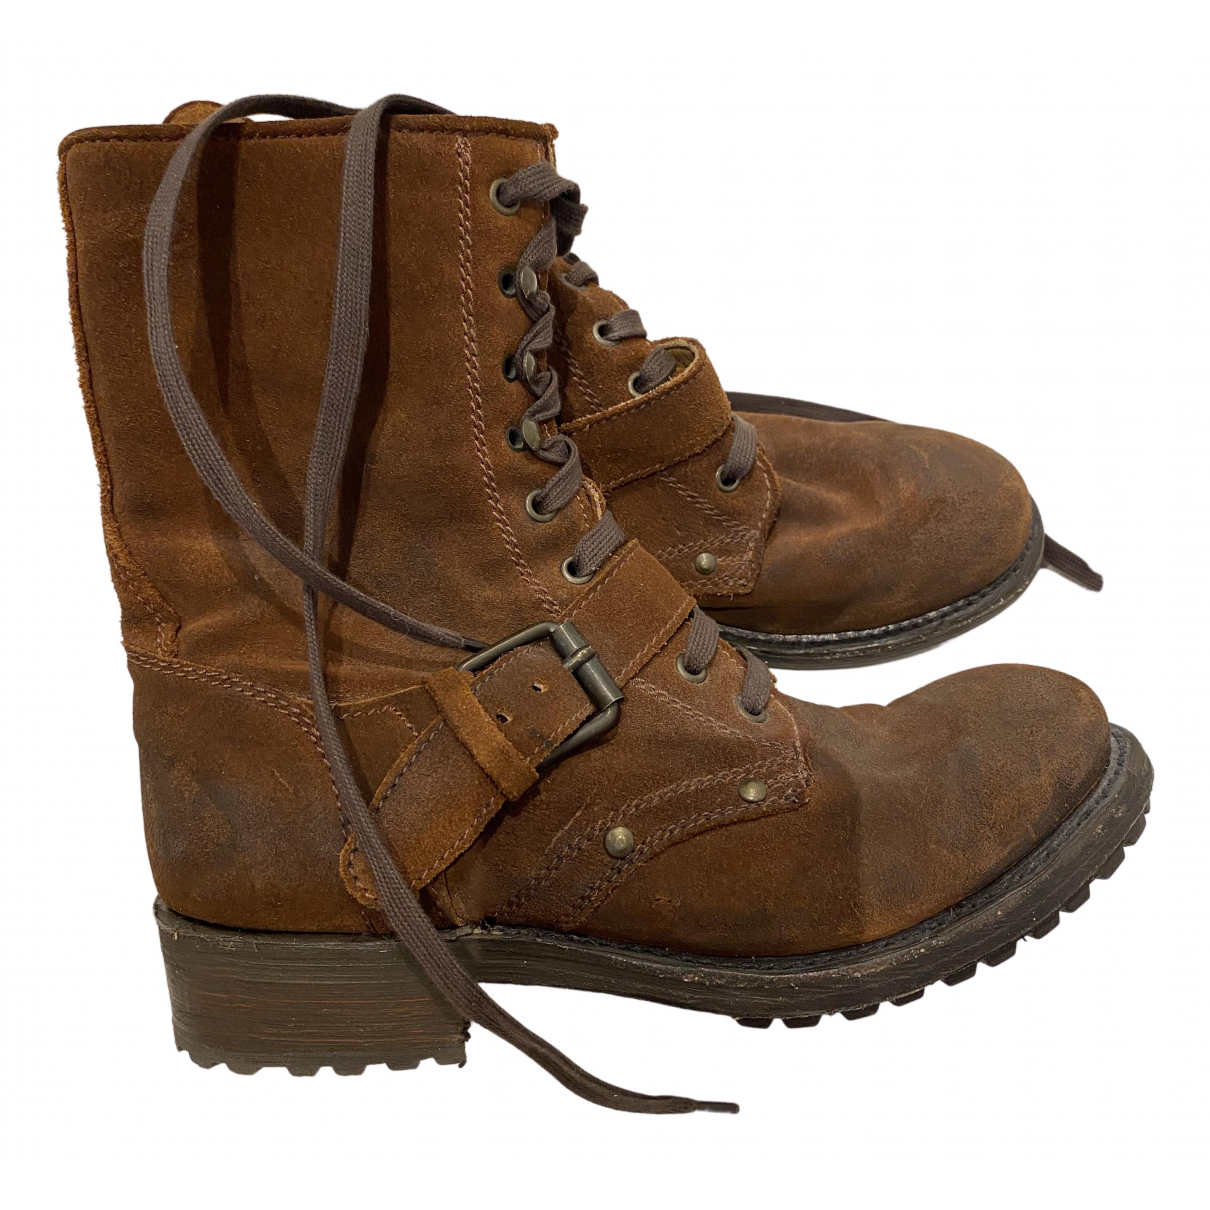 Ash N Brown Suede Boots for Women 38 EU